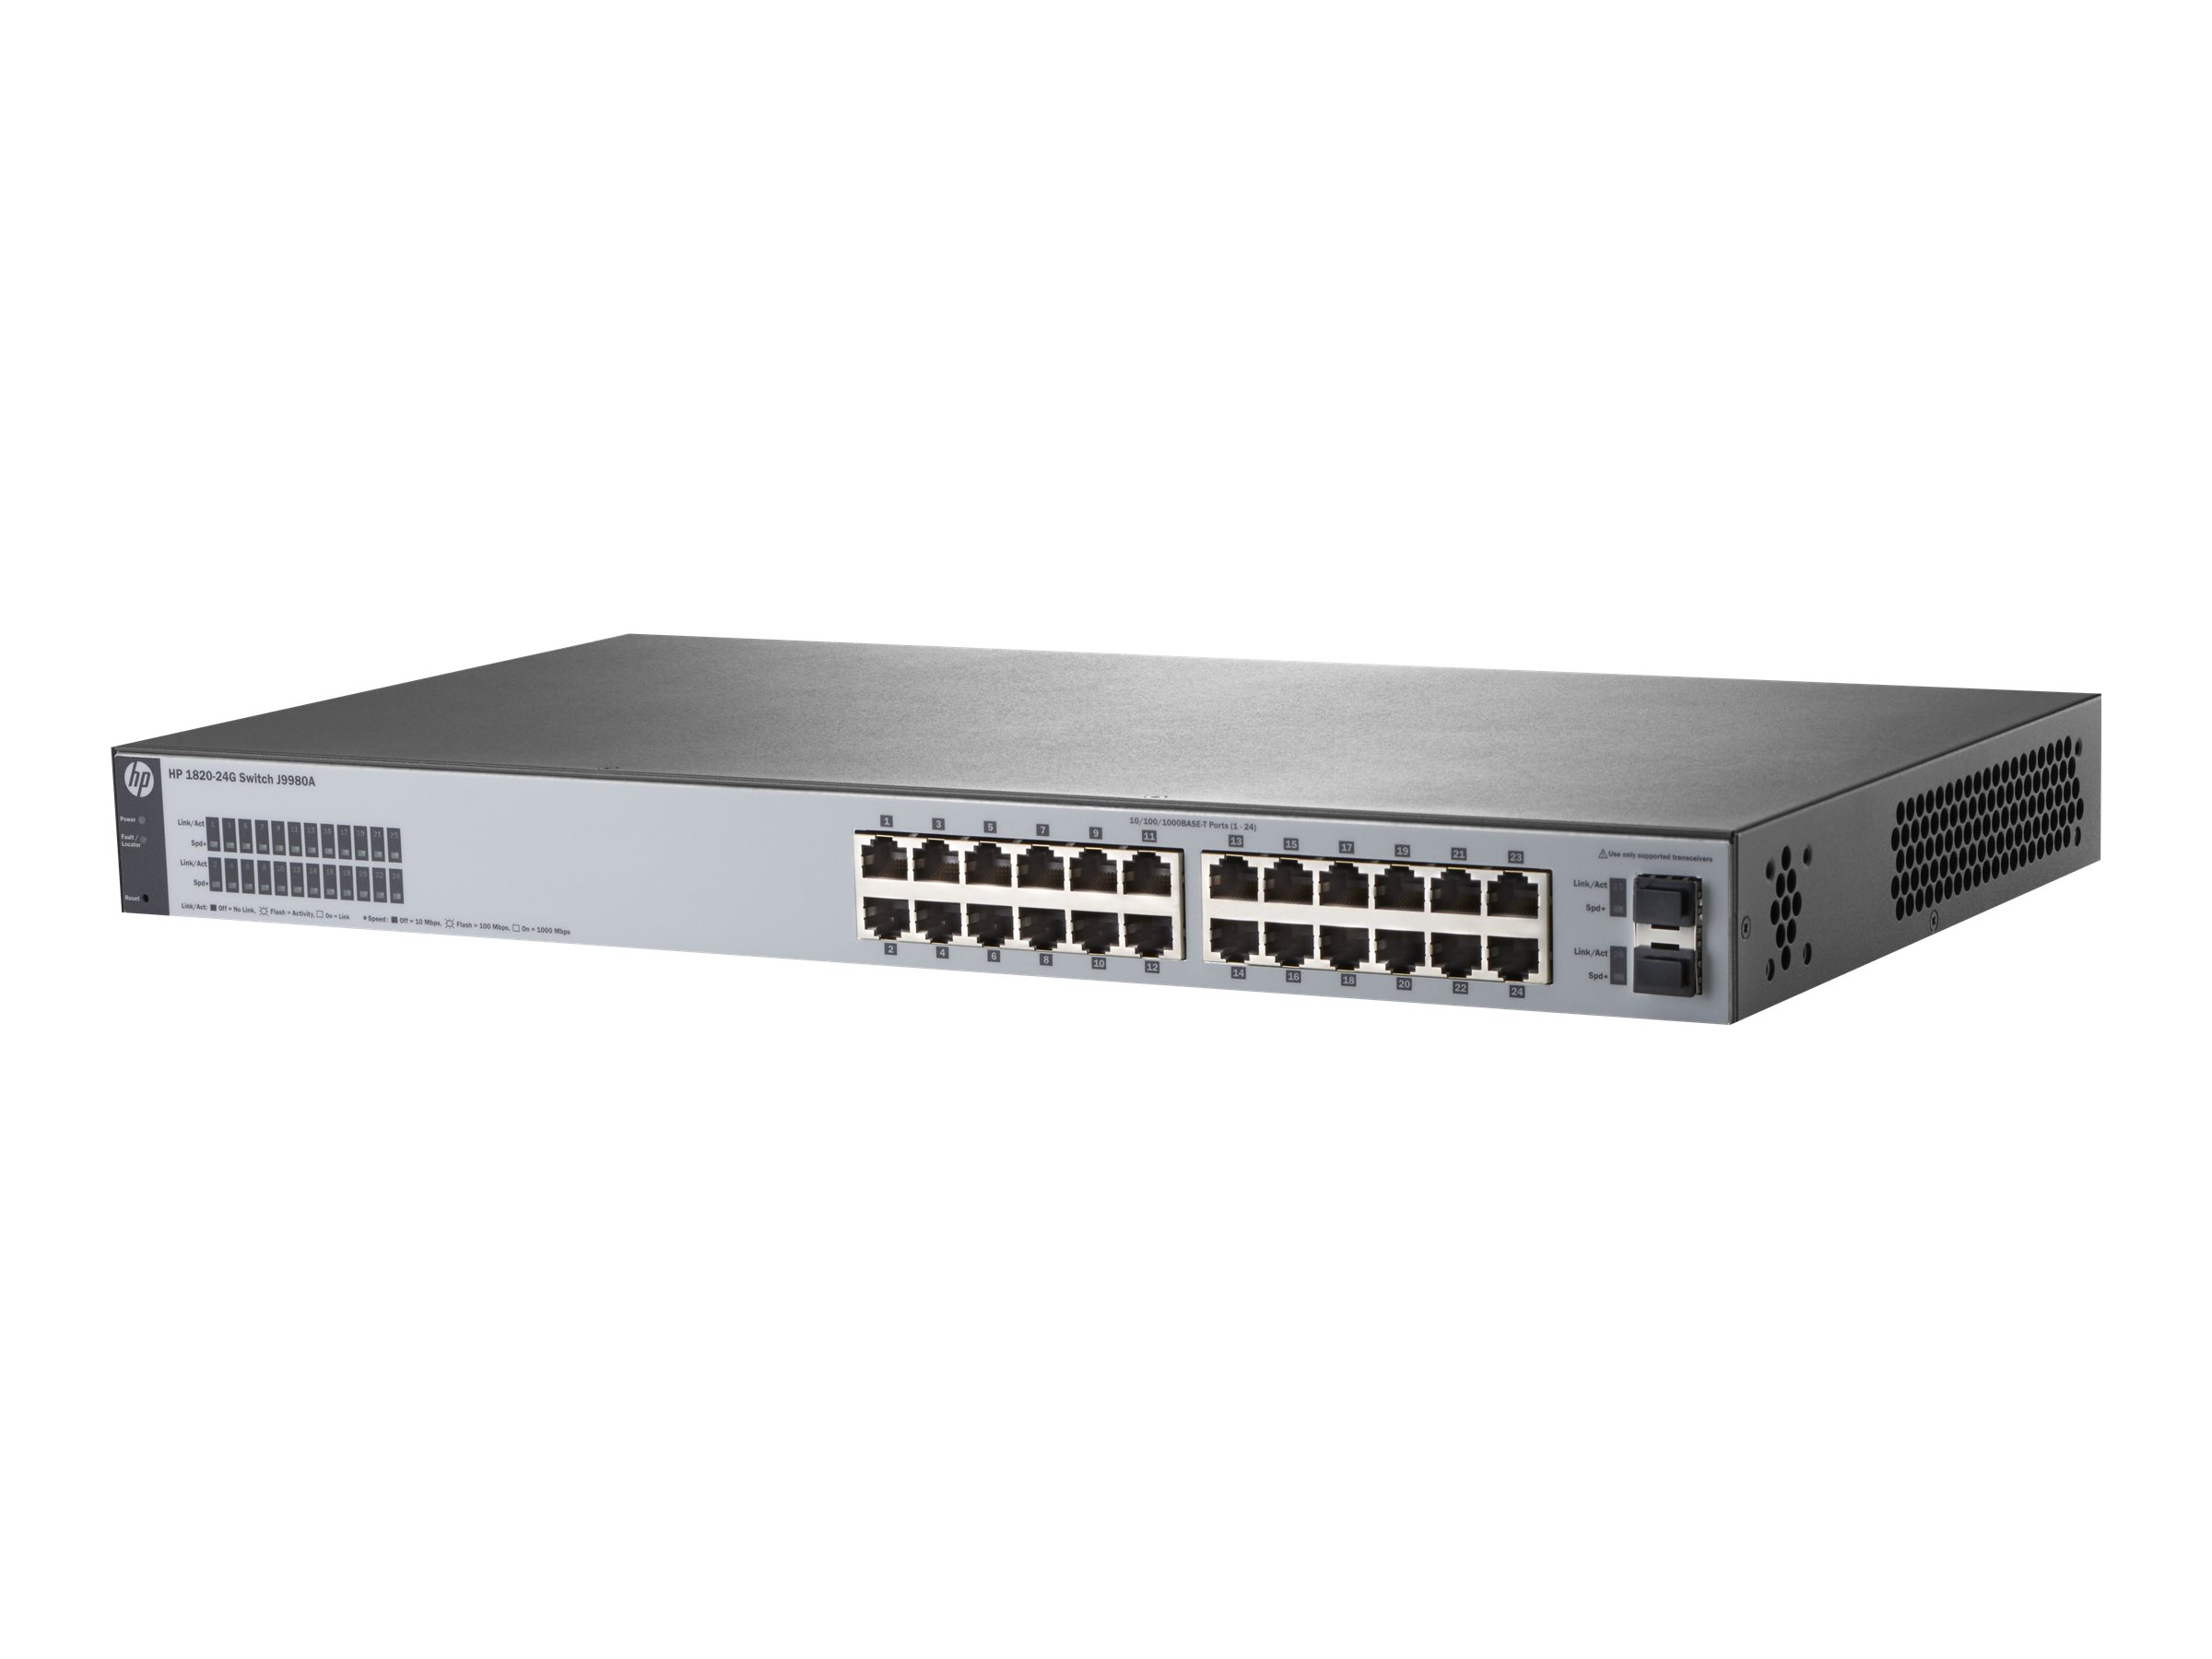 HP Enterprise 1820-24G - Switch - verwaltet